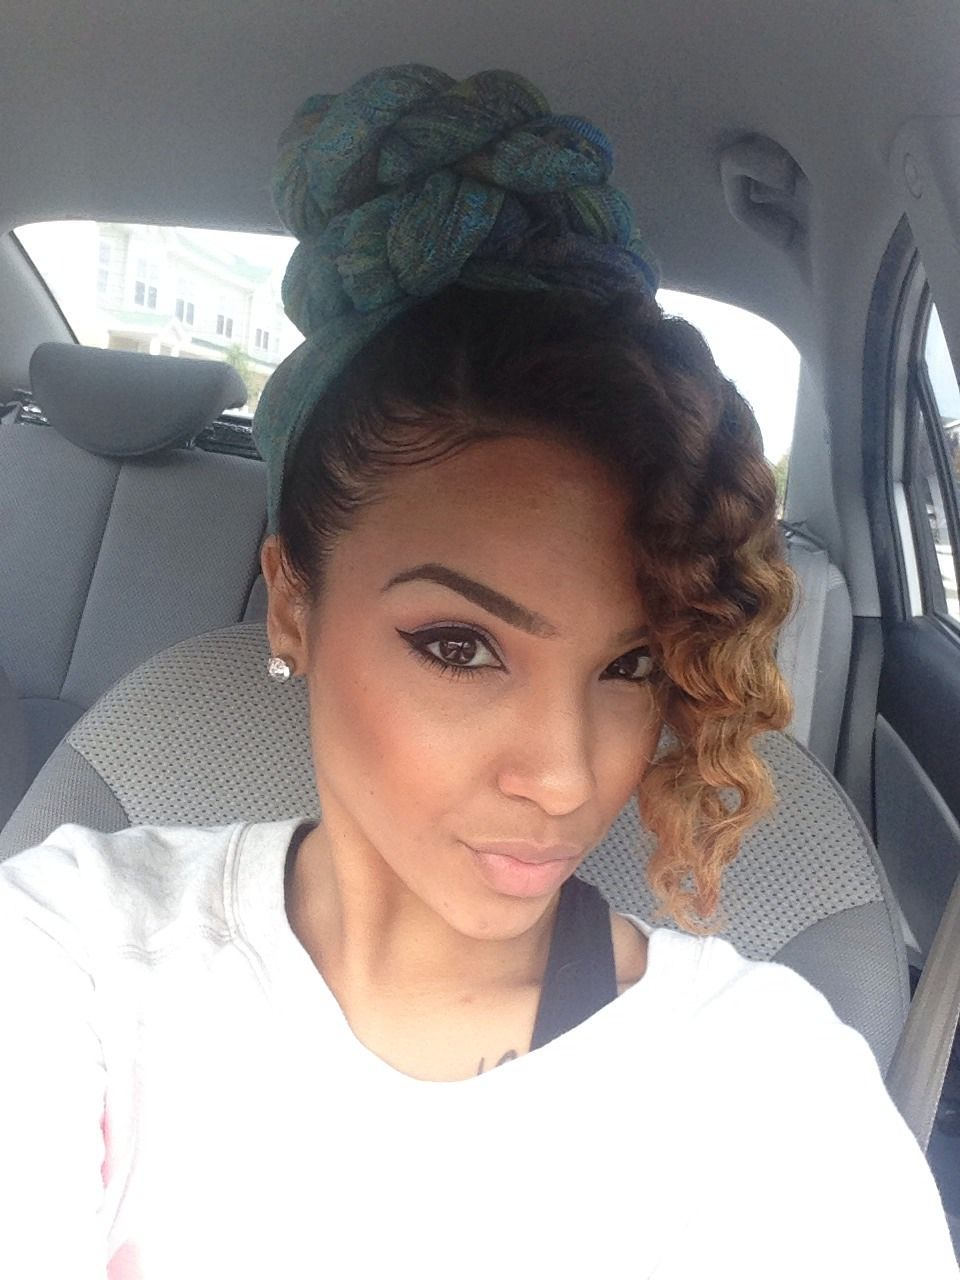 hair & wrap. To learn how to grow your hair longer click here - http://blackhair.cc/1jSY2ux